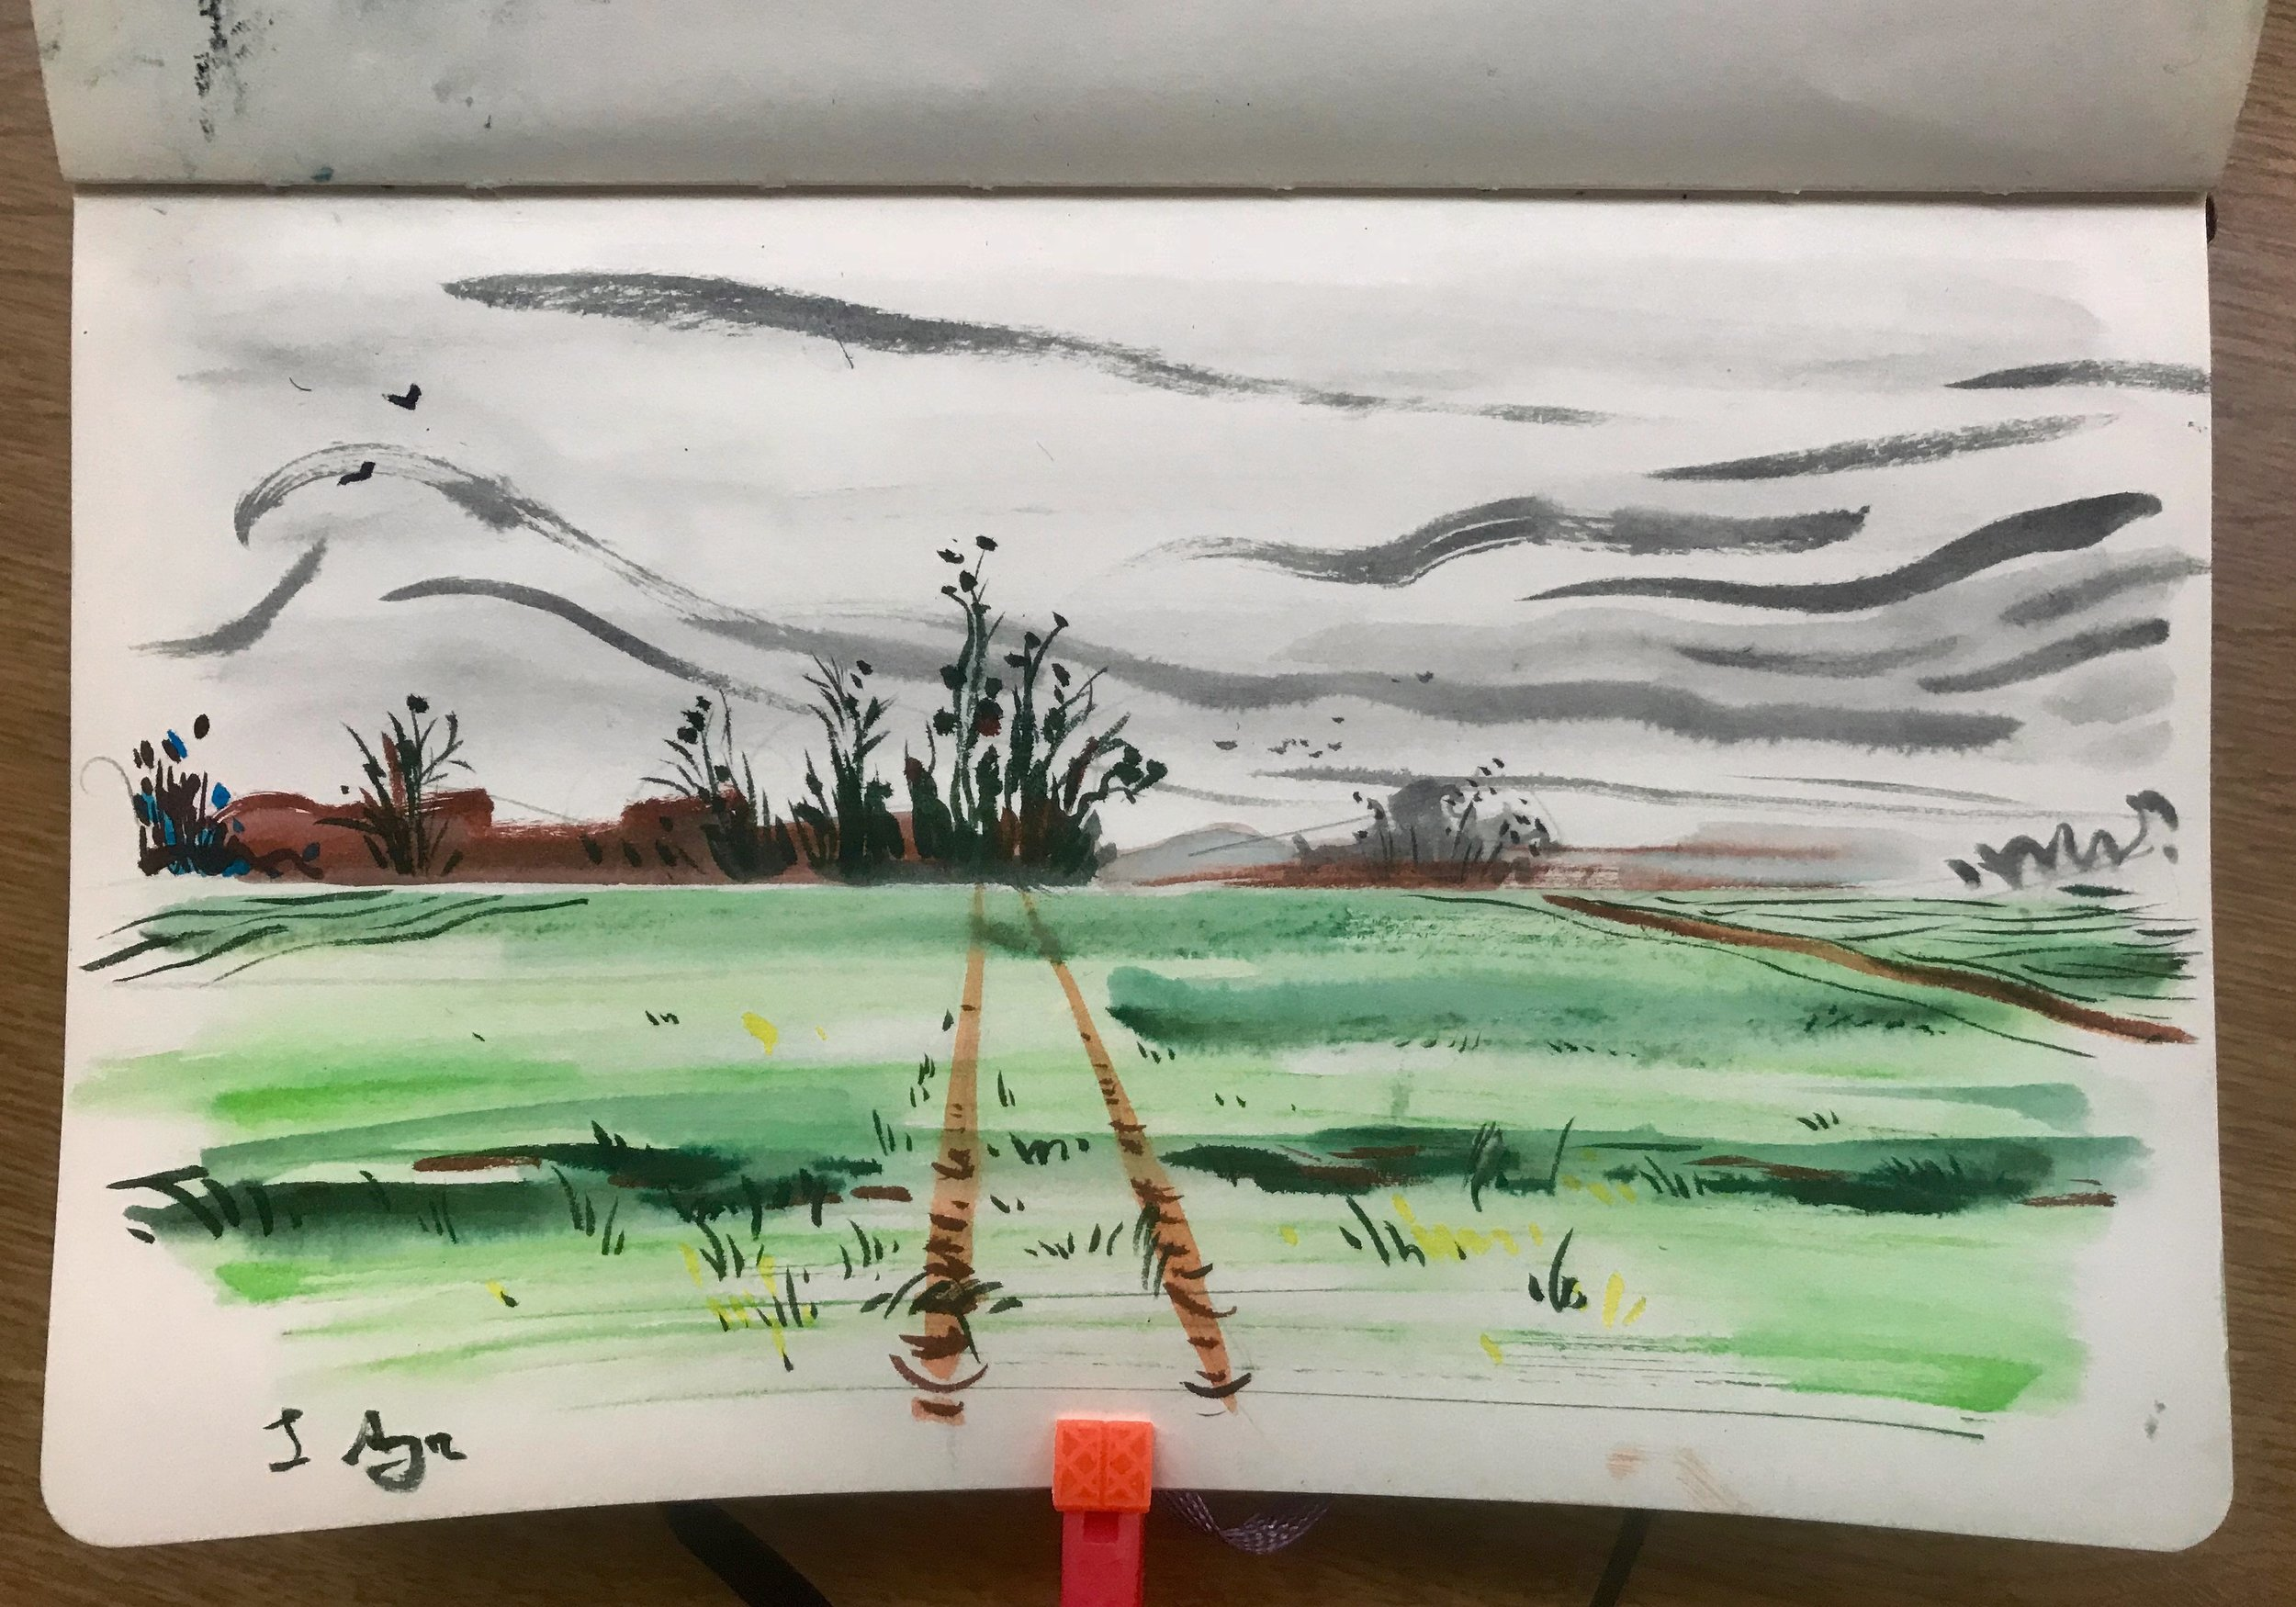 A sketch I painted on an overcast day in March 2018 in the wheat fields above Auvers-sur-Oise